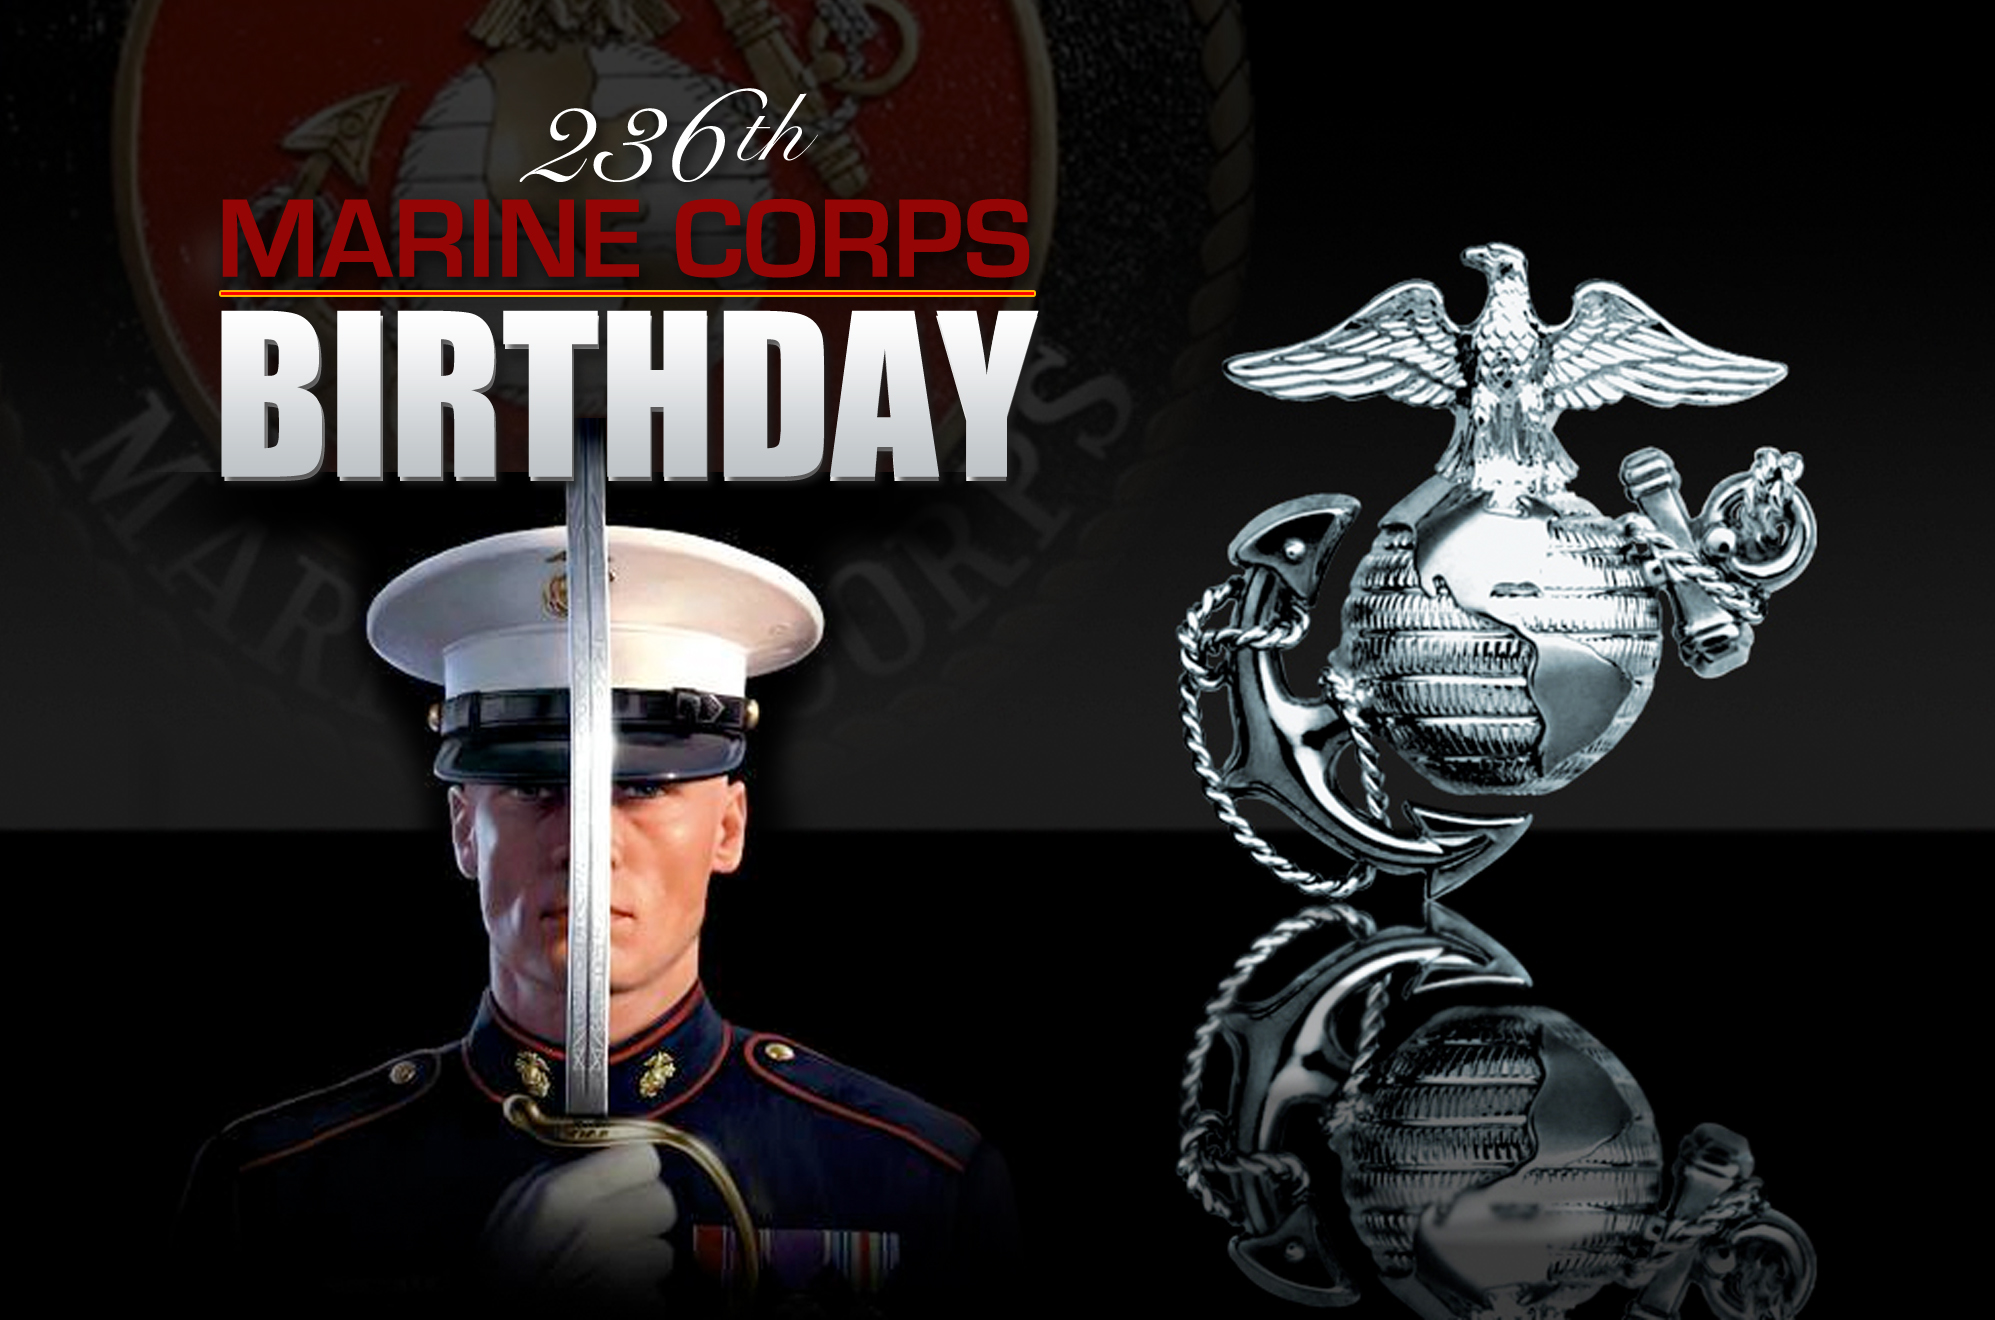 Air Force Leaders Send Birthday Messages To Marine Corps U S Air Force Article Display